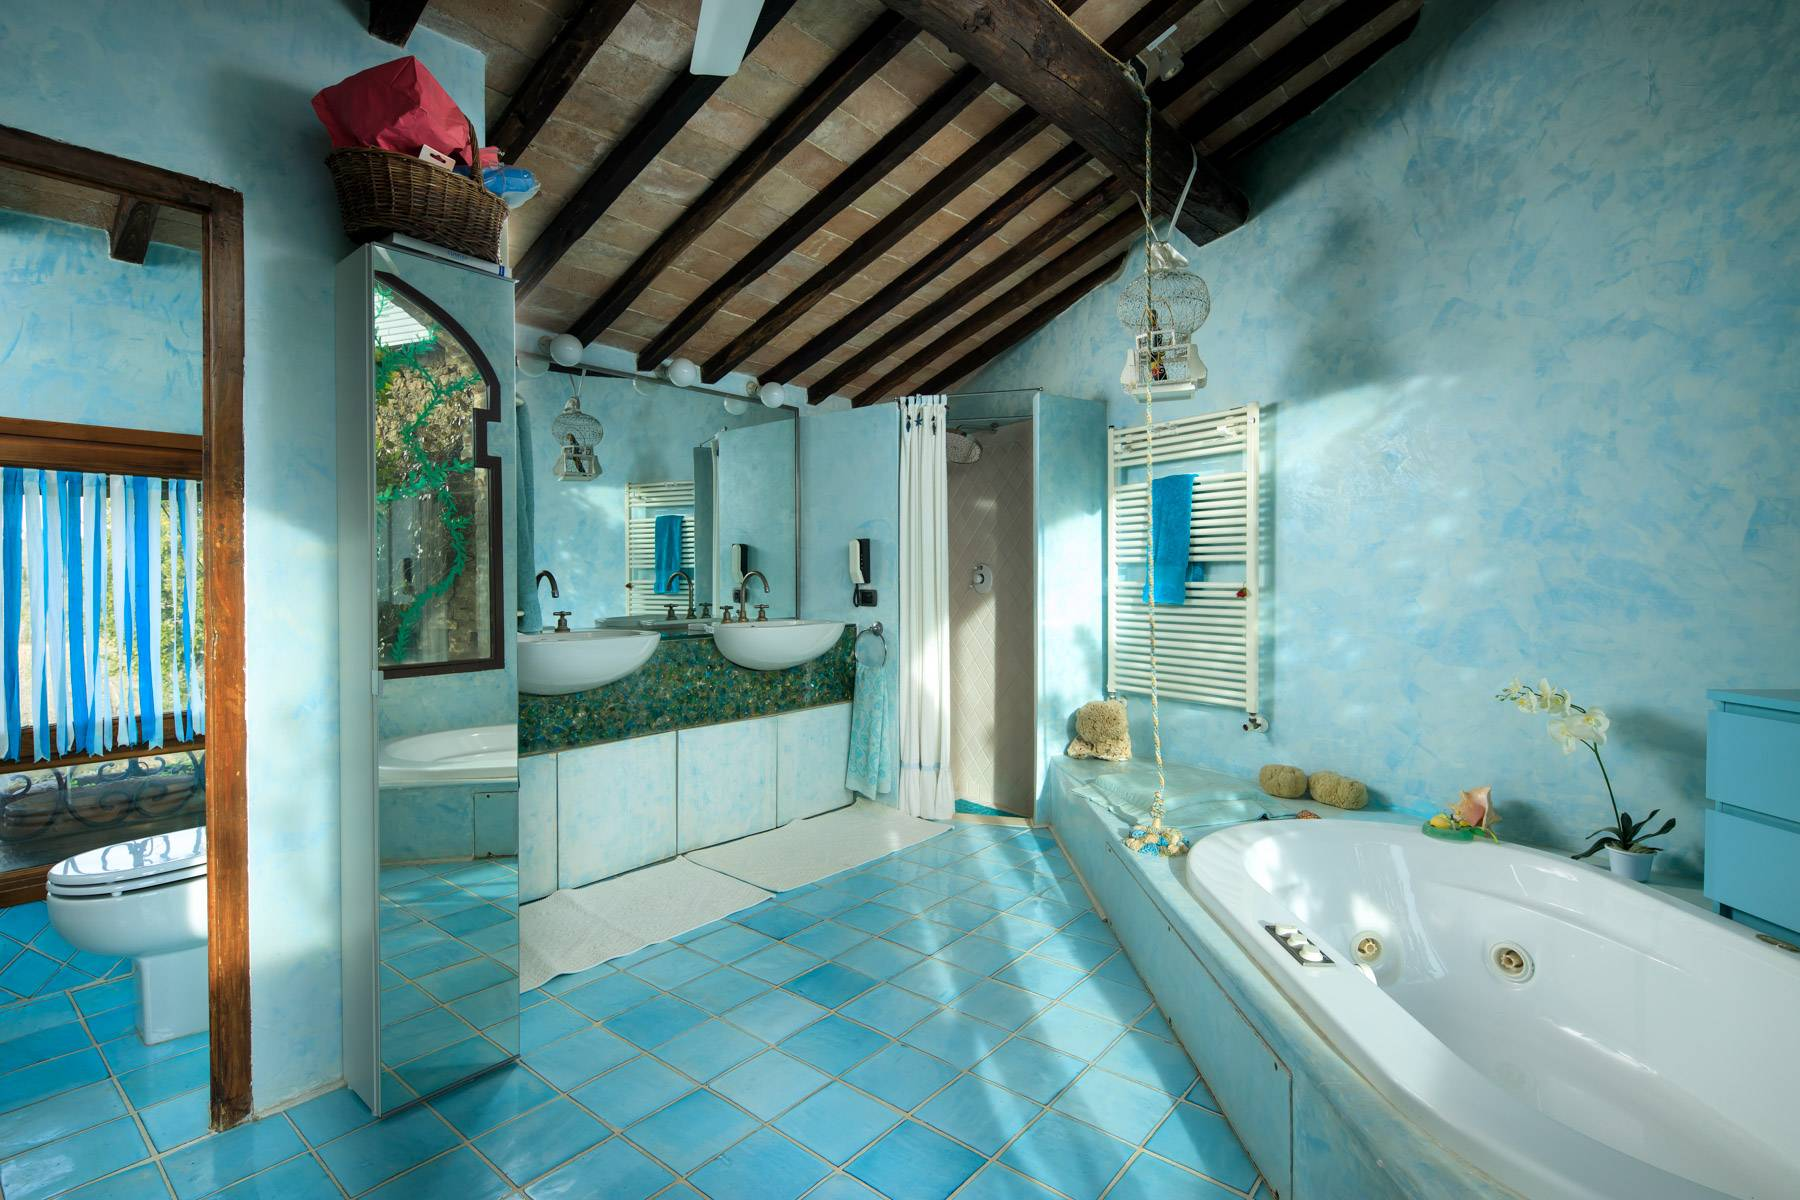 Wonderful historical Villa and country house close by Siena - 32